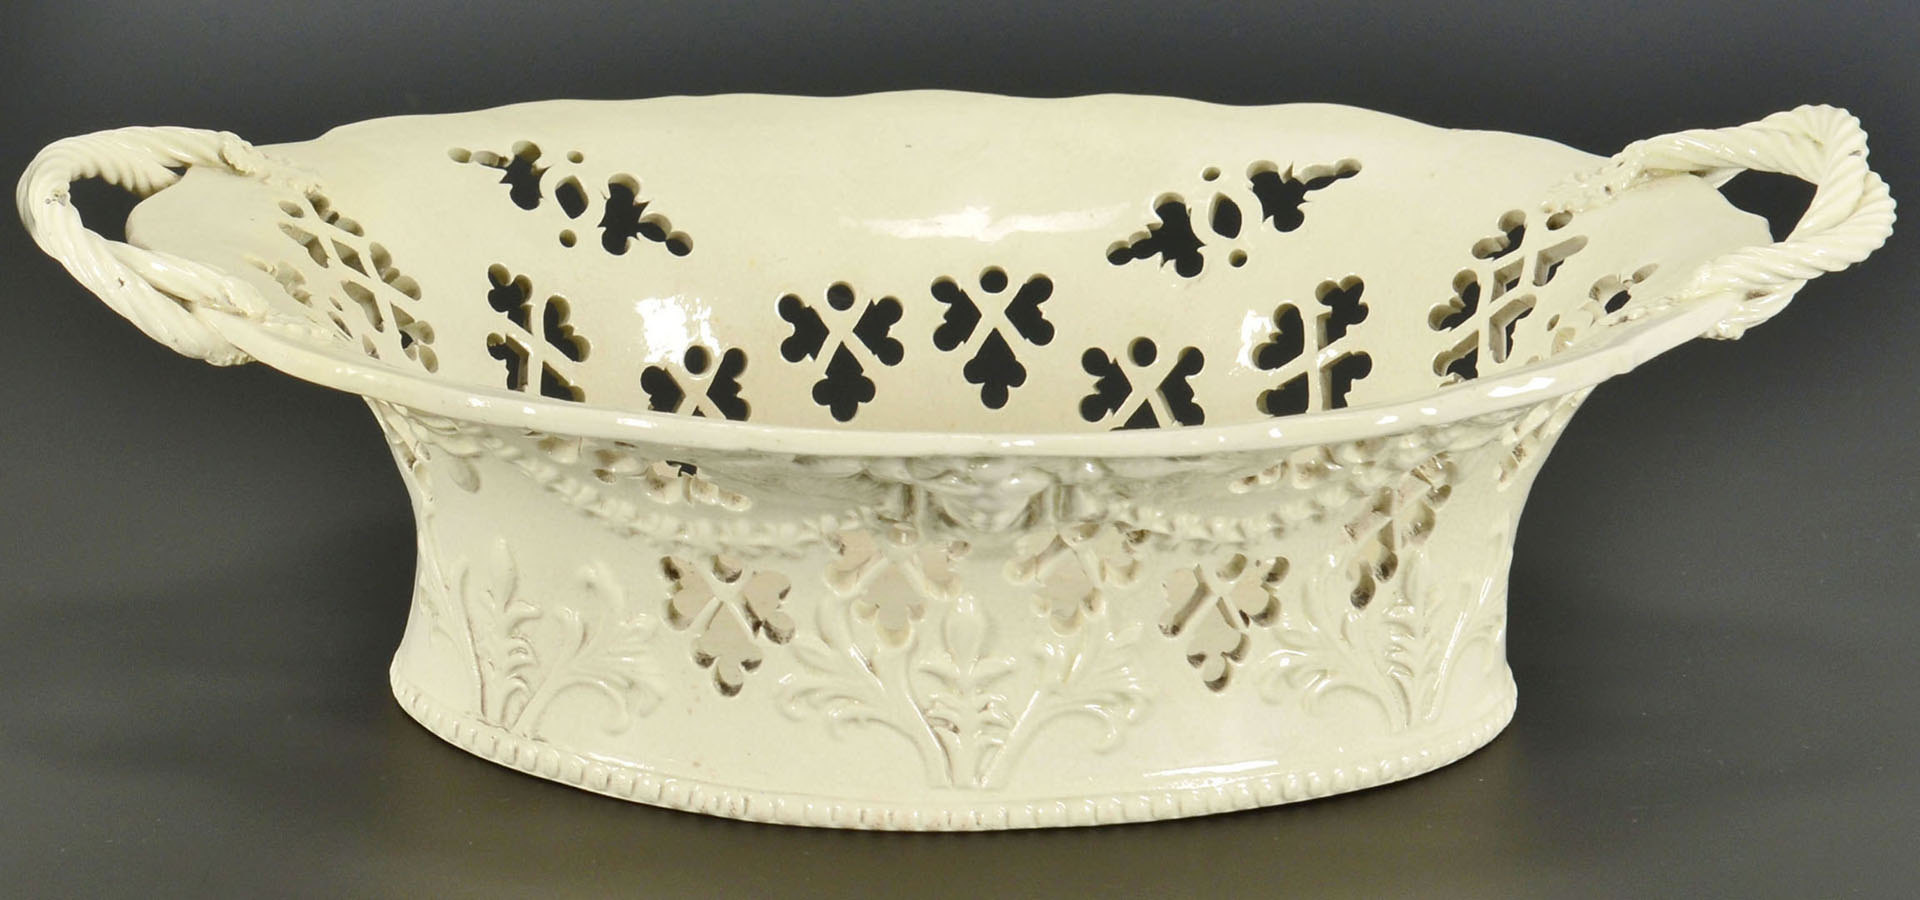 Lot 244: Molded creamware basket and plate